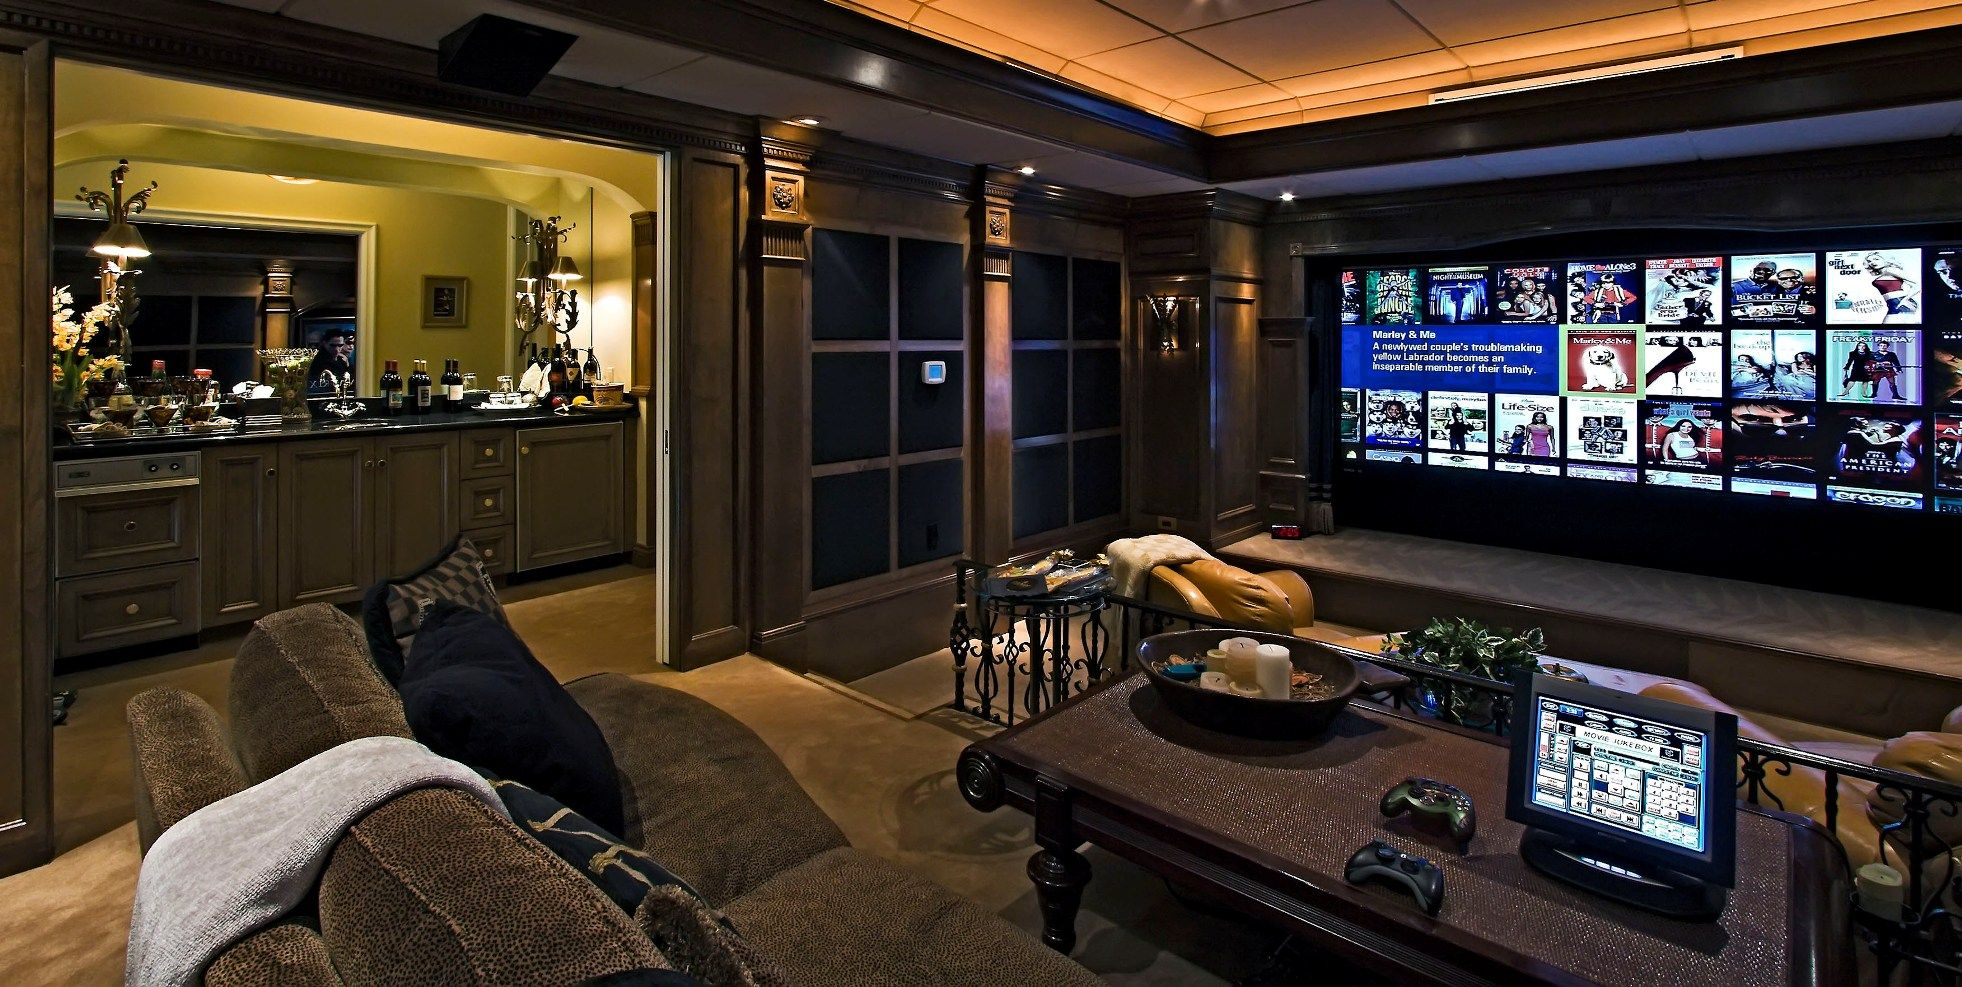 home decorating ideas home theater decor ideas home theater home theater dcor - Home Cinema Decor